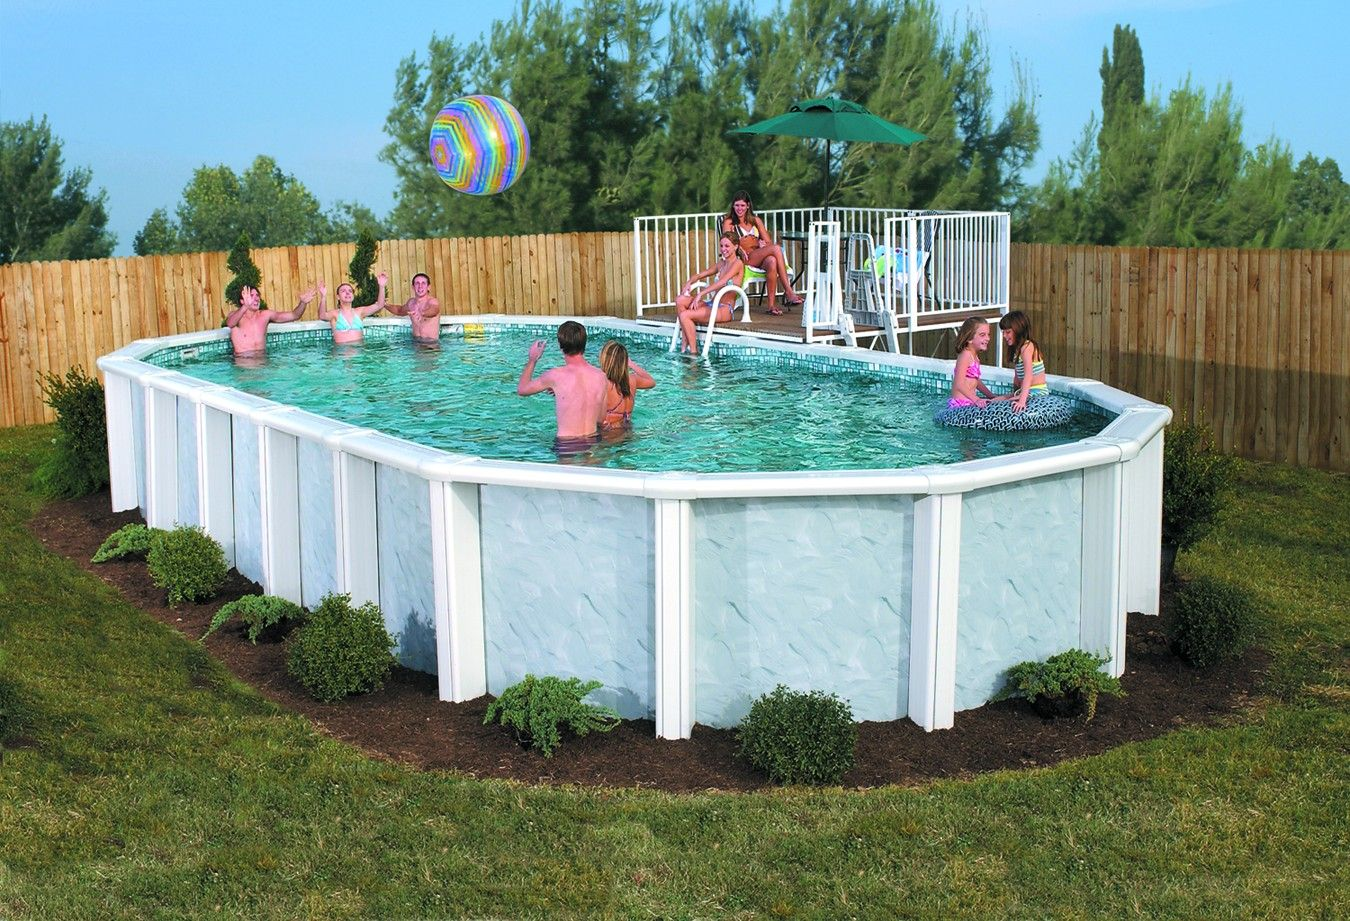 Pin By Toplandscapedesign On Gardening Above Ground Pool Landscaping Above Ground Pool Pool Landscape Design